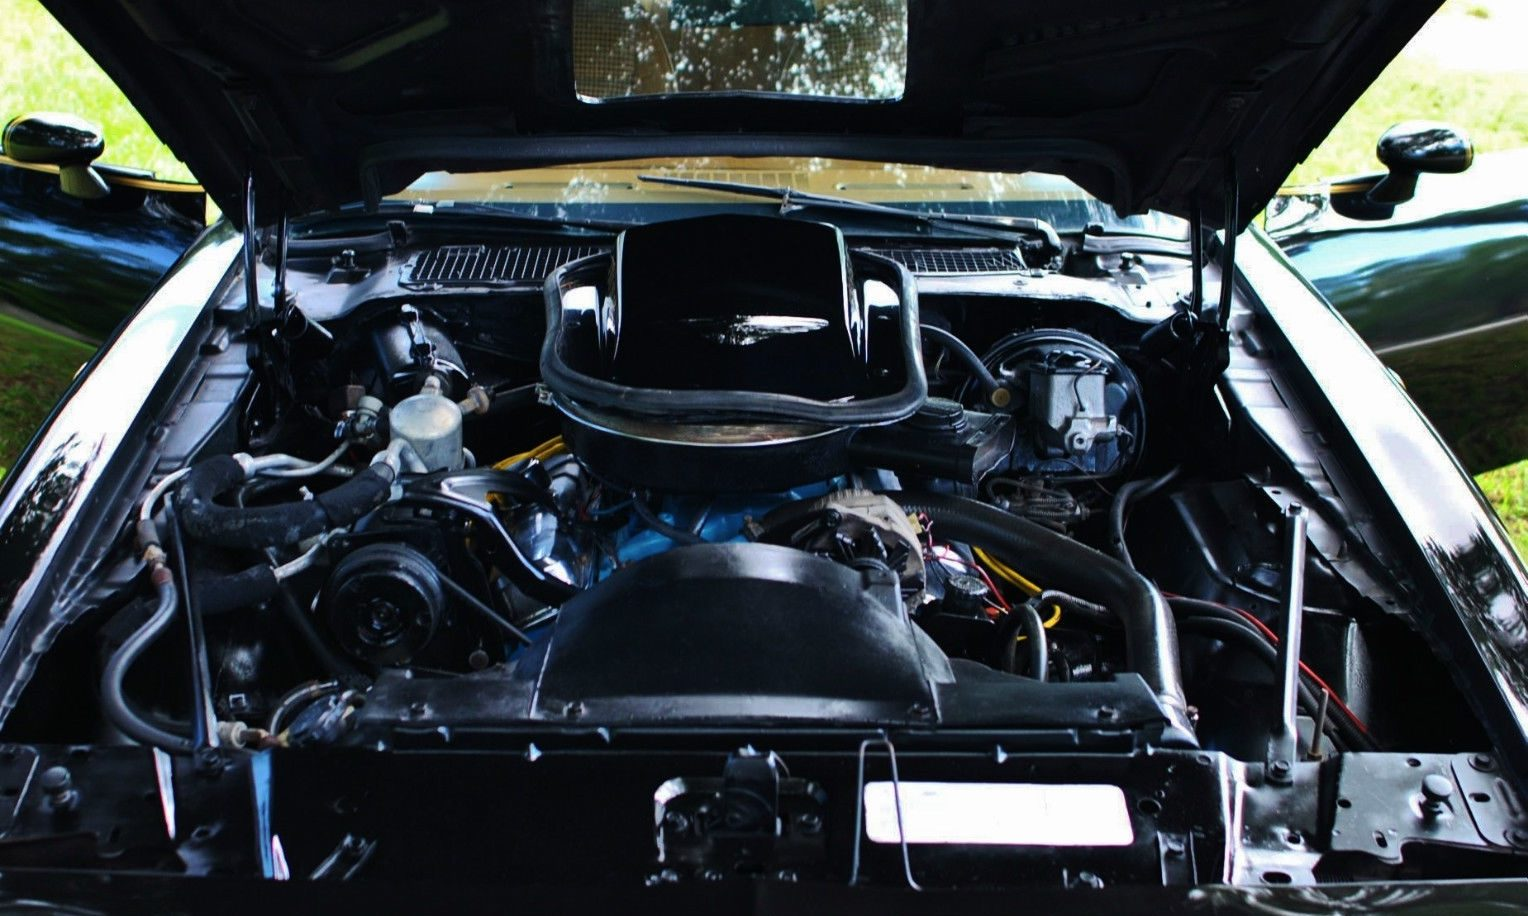 Factory Air 1979 Pontiac Trans Am Big Block Engines The Seller Points Out That 66l Is Beautifully Detailed And It But Id Like To Know A Bit More About Its Maintenance History Before I